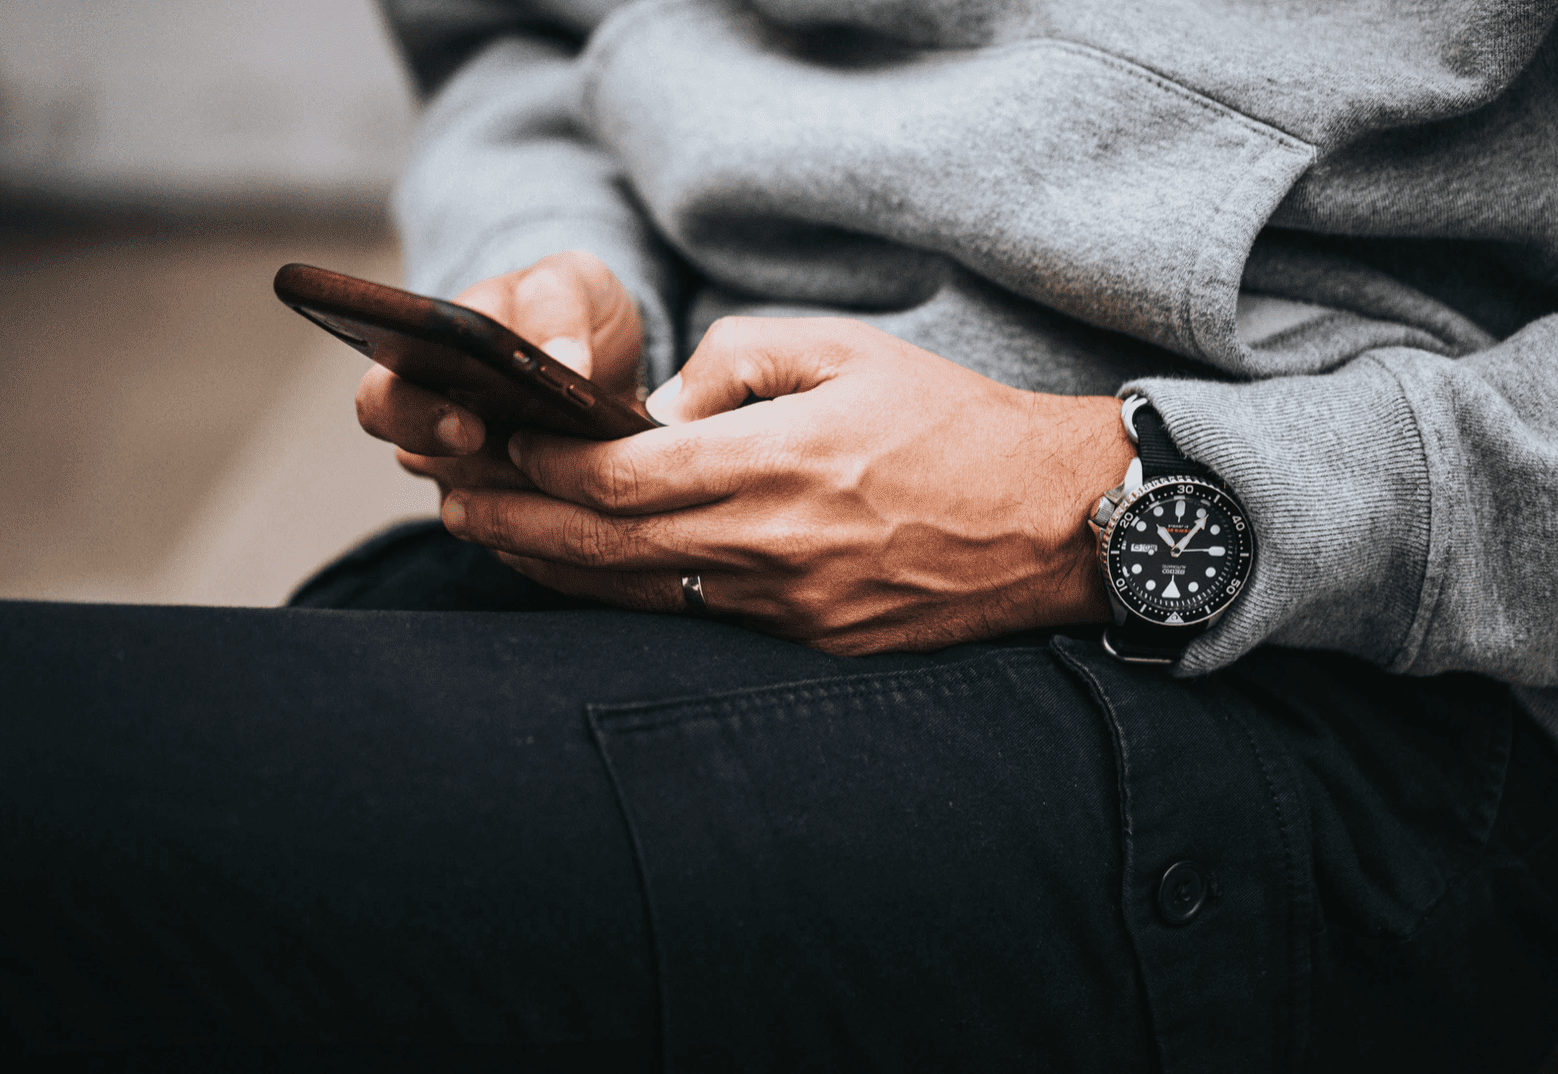 man wearing expensive watch looking down at phone